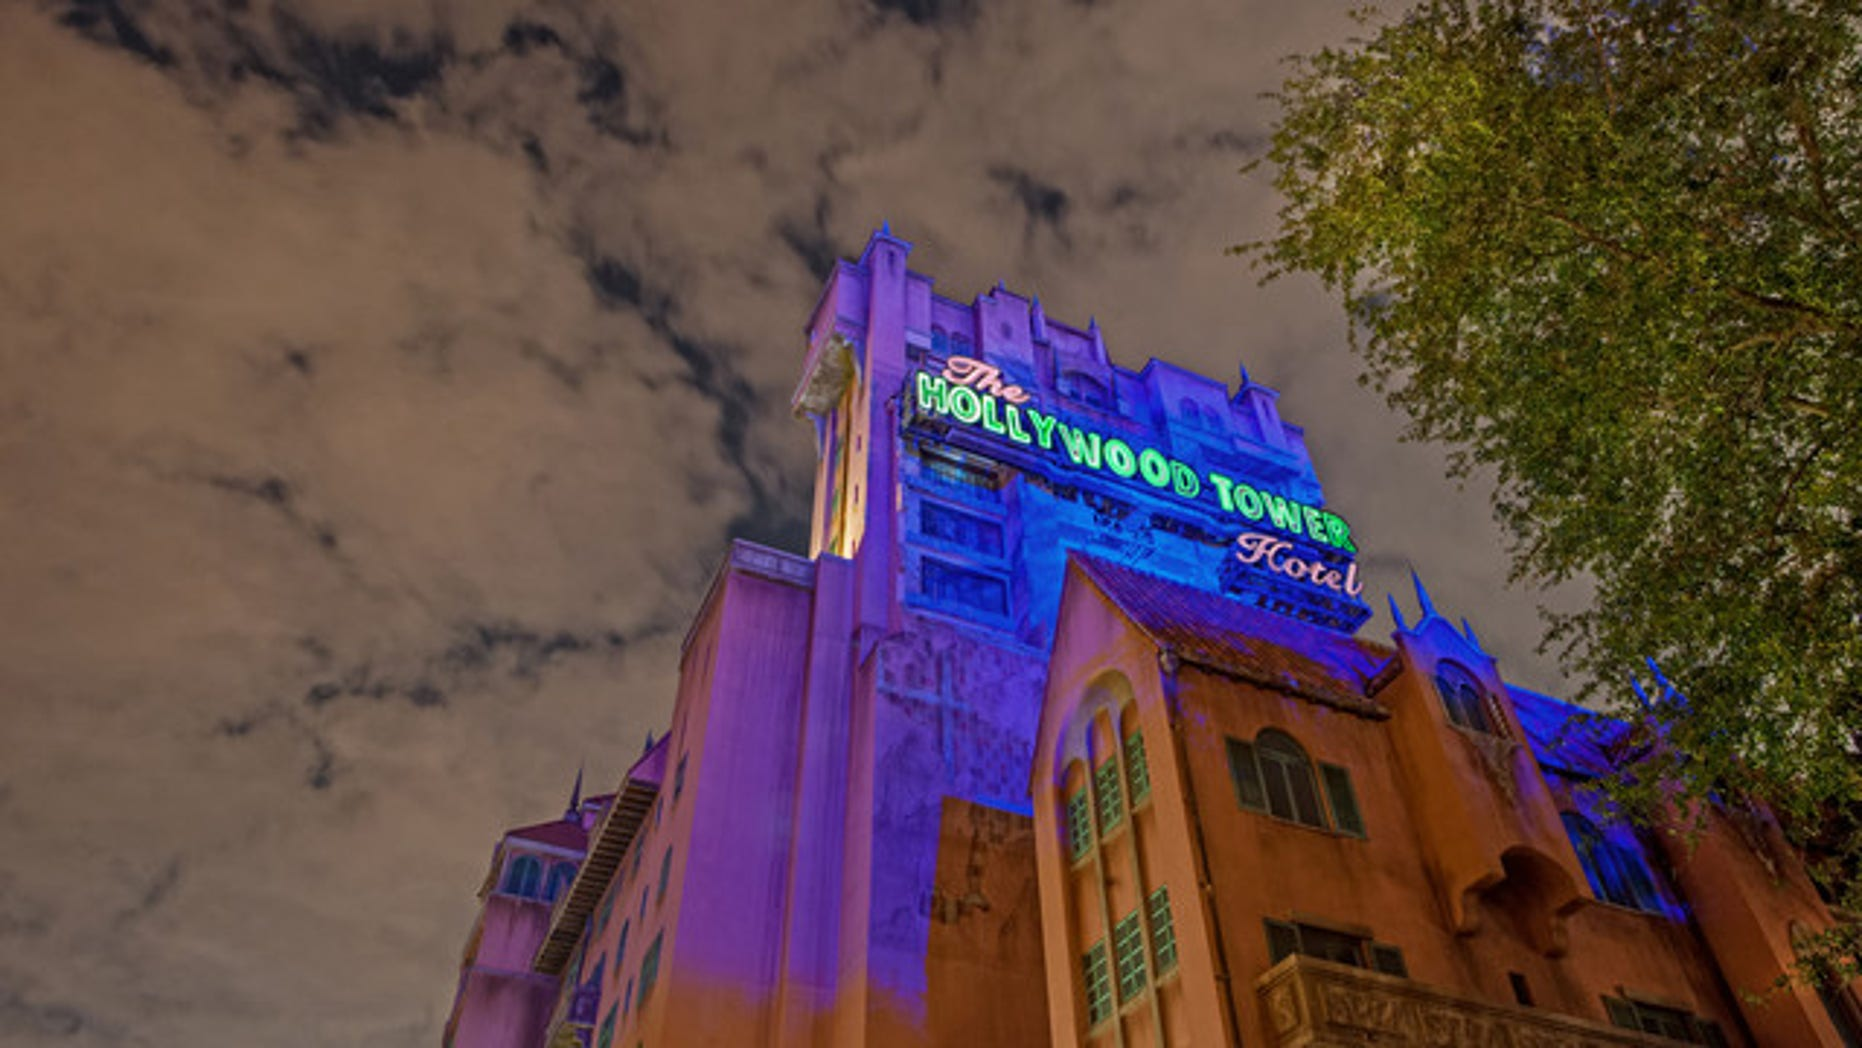 Enjoy a spooky sipper inside the Hollywood Tower Hotel's new bar.